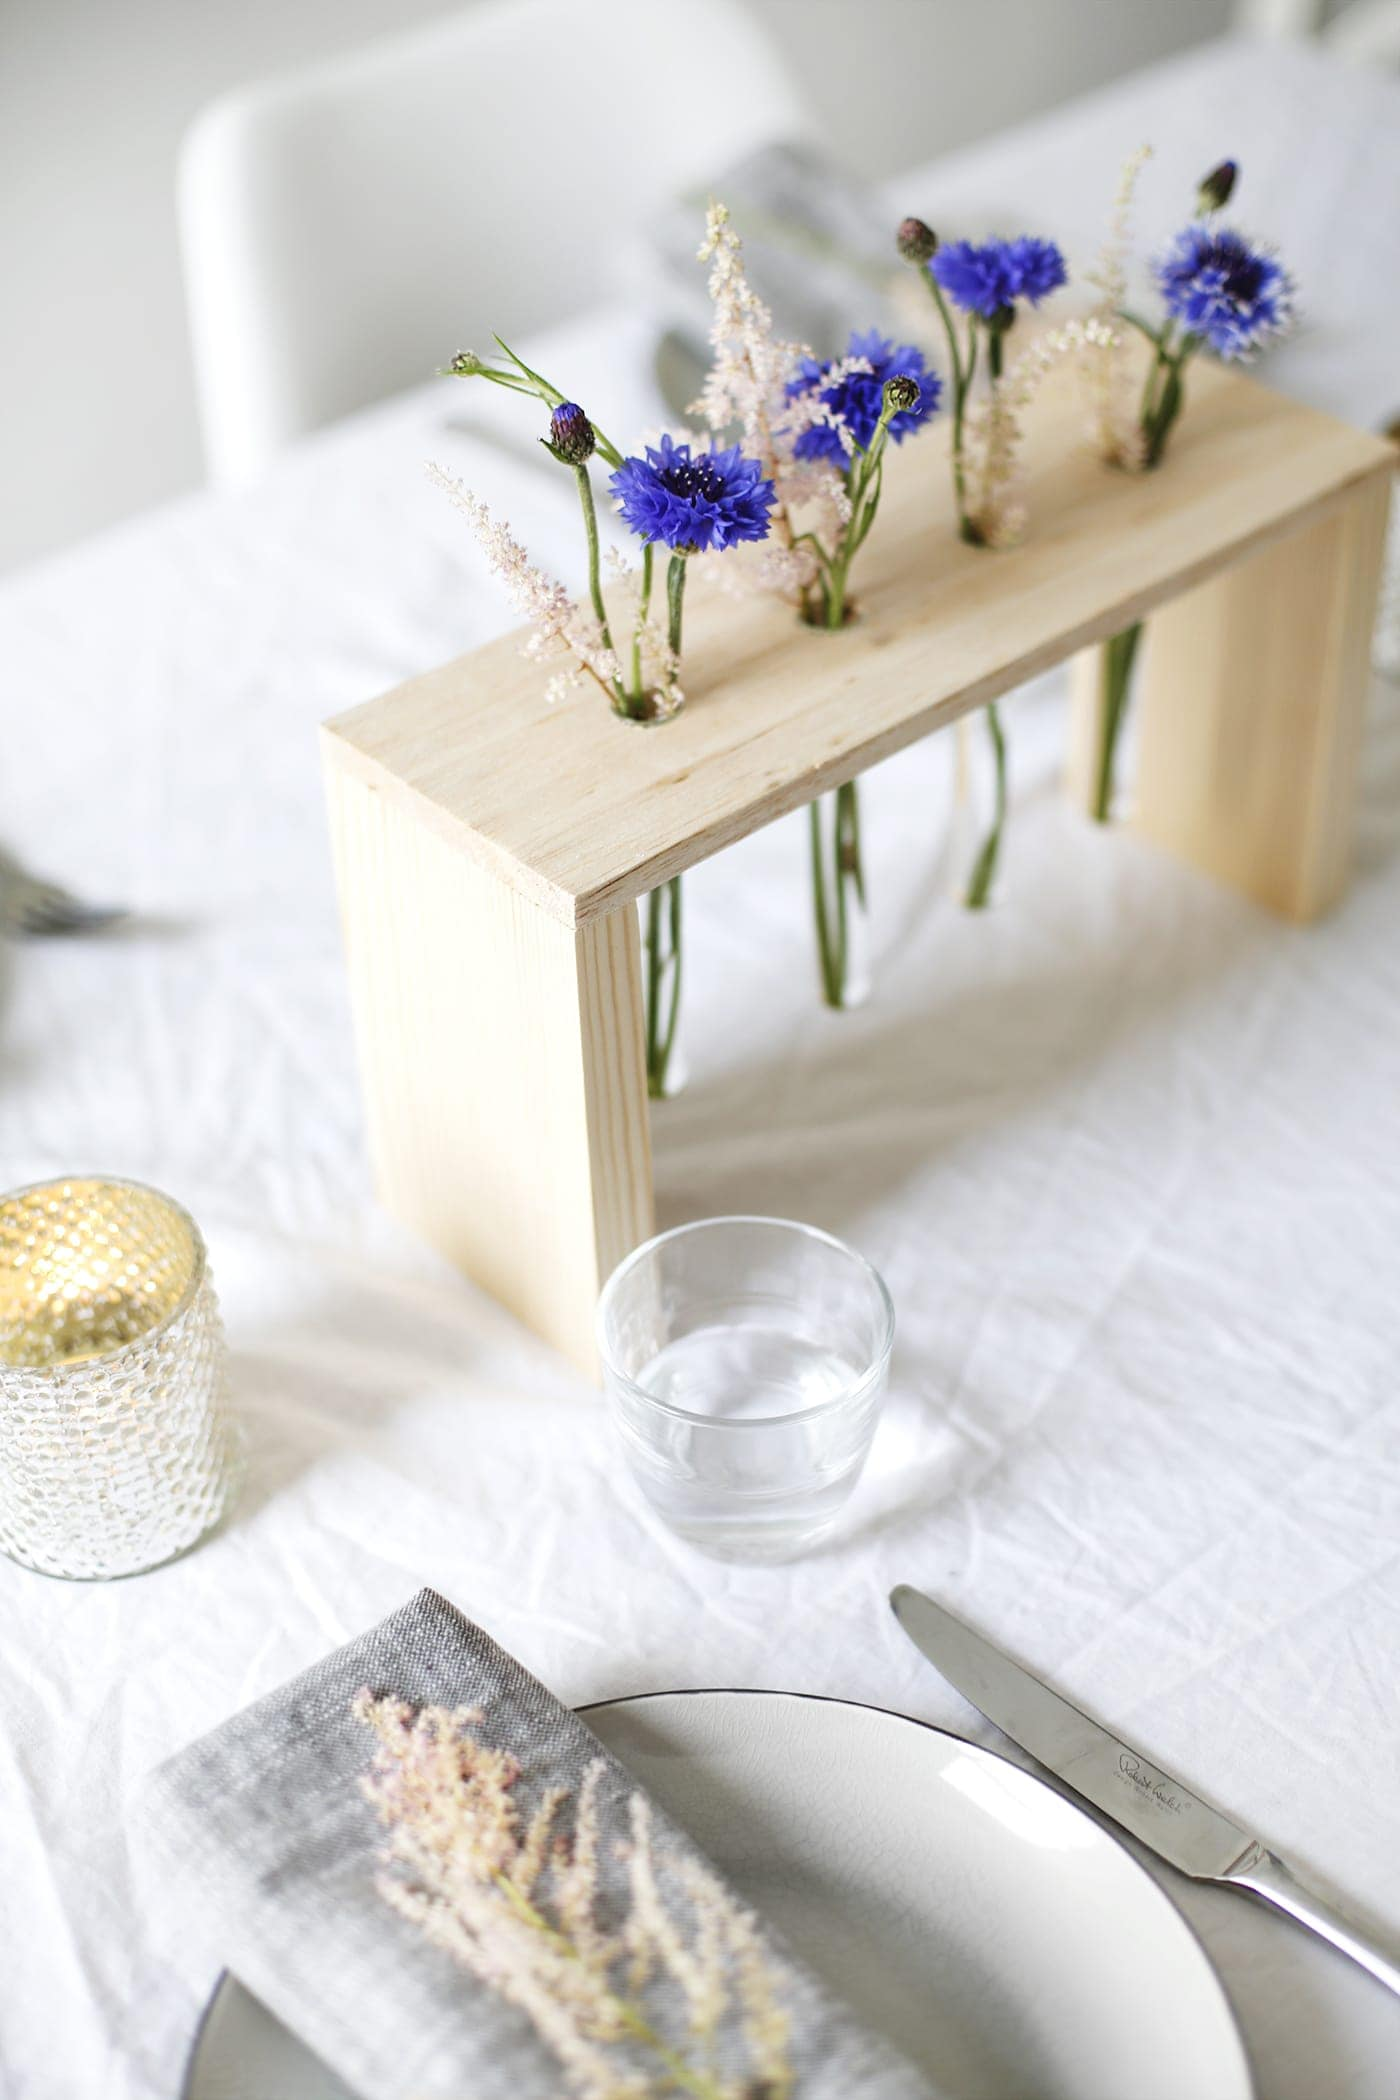 diy-floral-table-centre-made-with-wood-and-test-tubes-easy-craft-tutorial-perfect-for-entertaining-home-tutorial-ideas